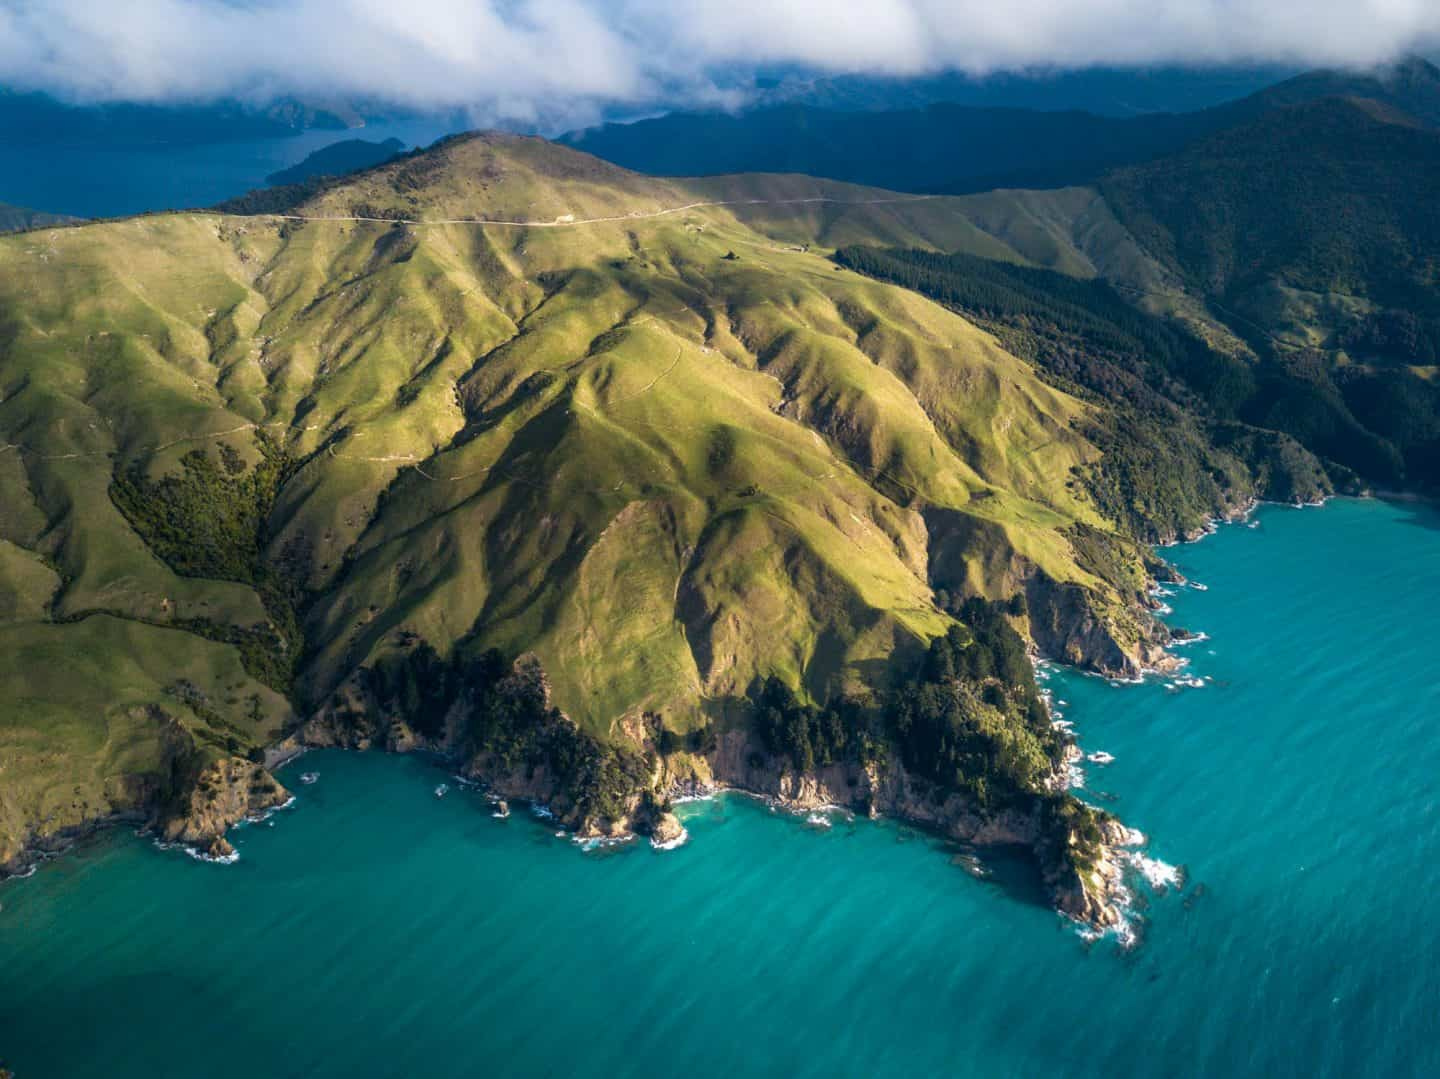 Drone photography from high above Queen Charlotte in the Marlborough Sounds